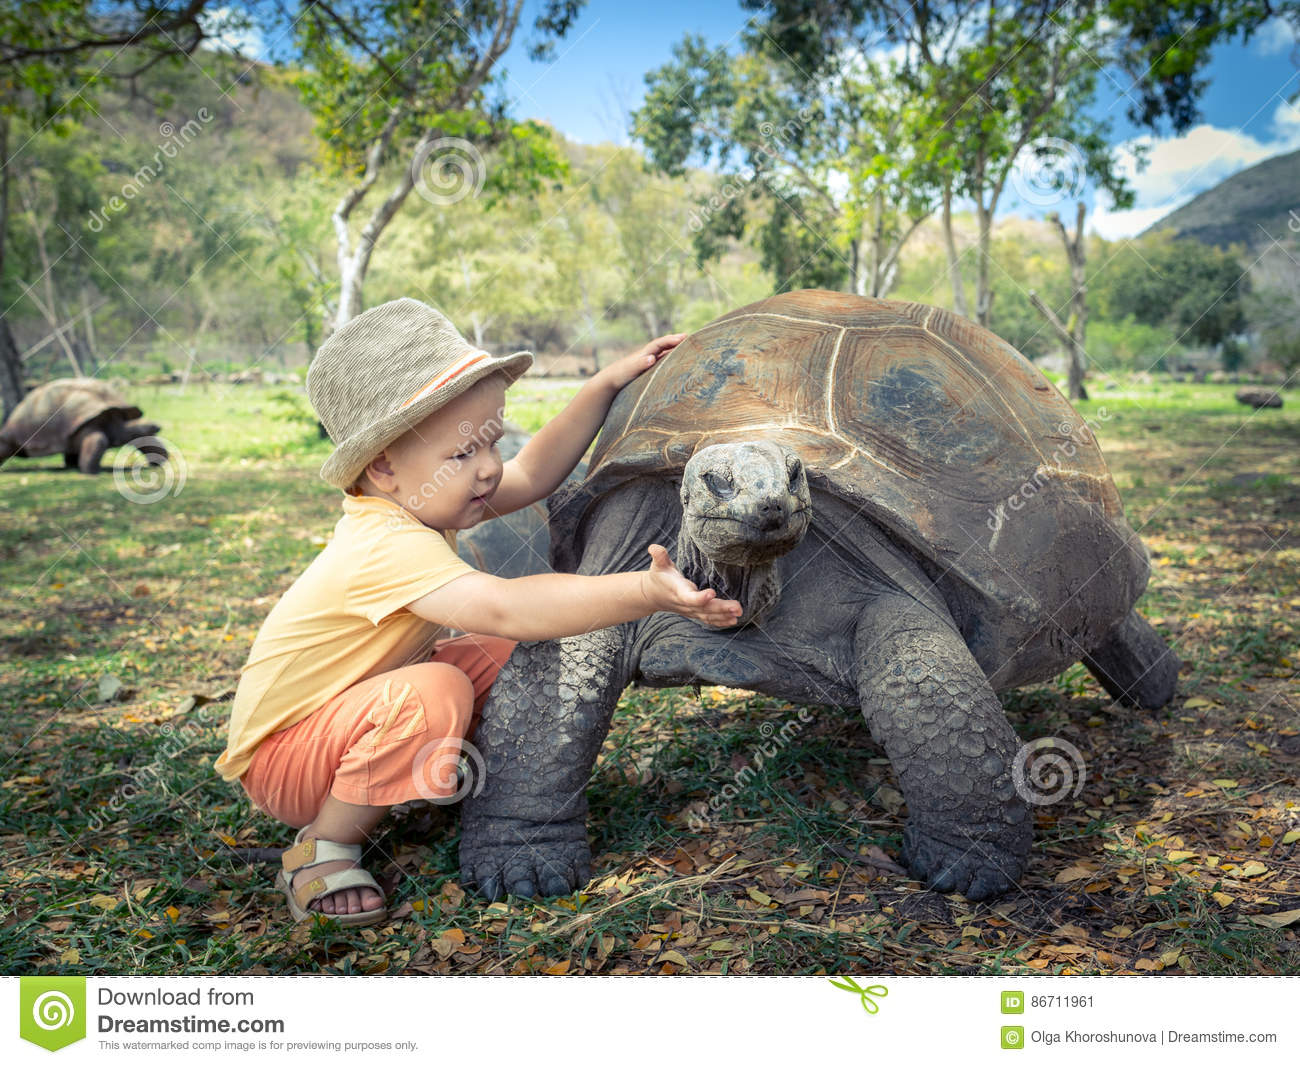 Aldabra Giant Tortoise clipart #8, Download drawings